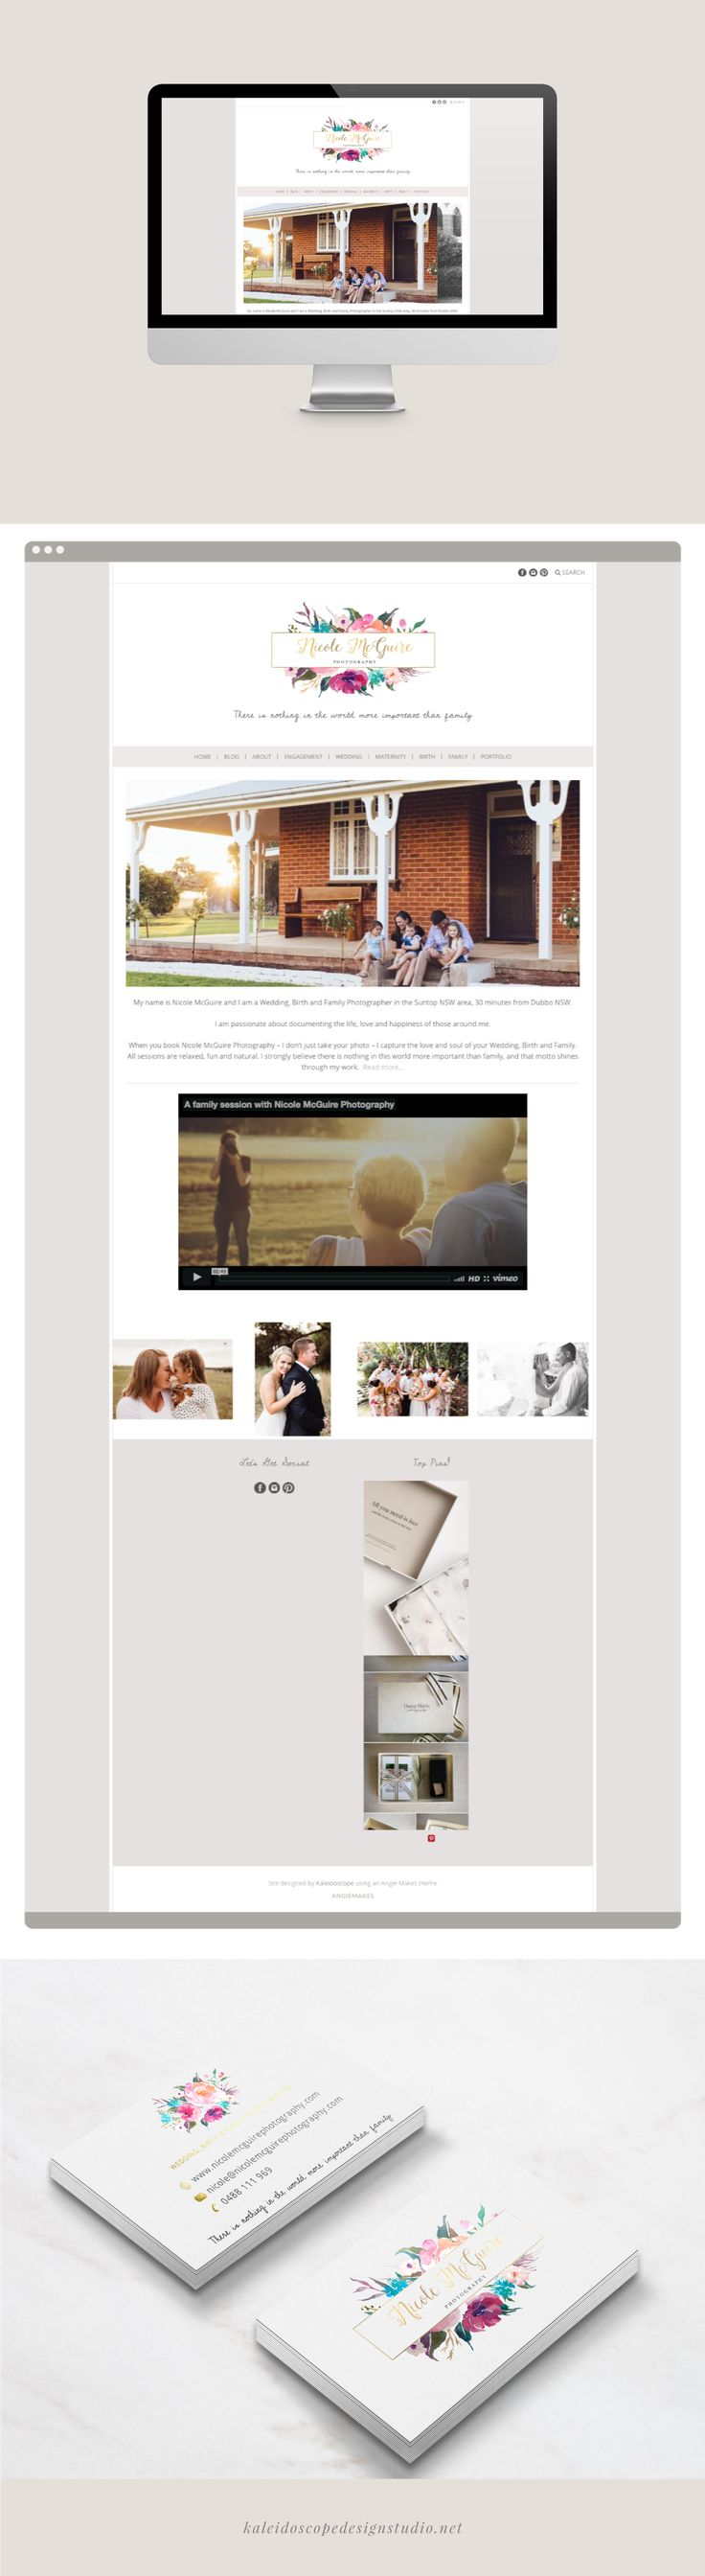 Nicole McGuire Photography Website Design - Kaleidoscope Design Studio